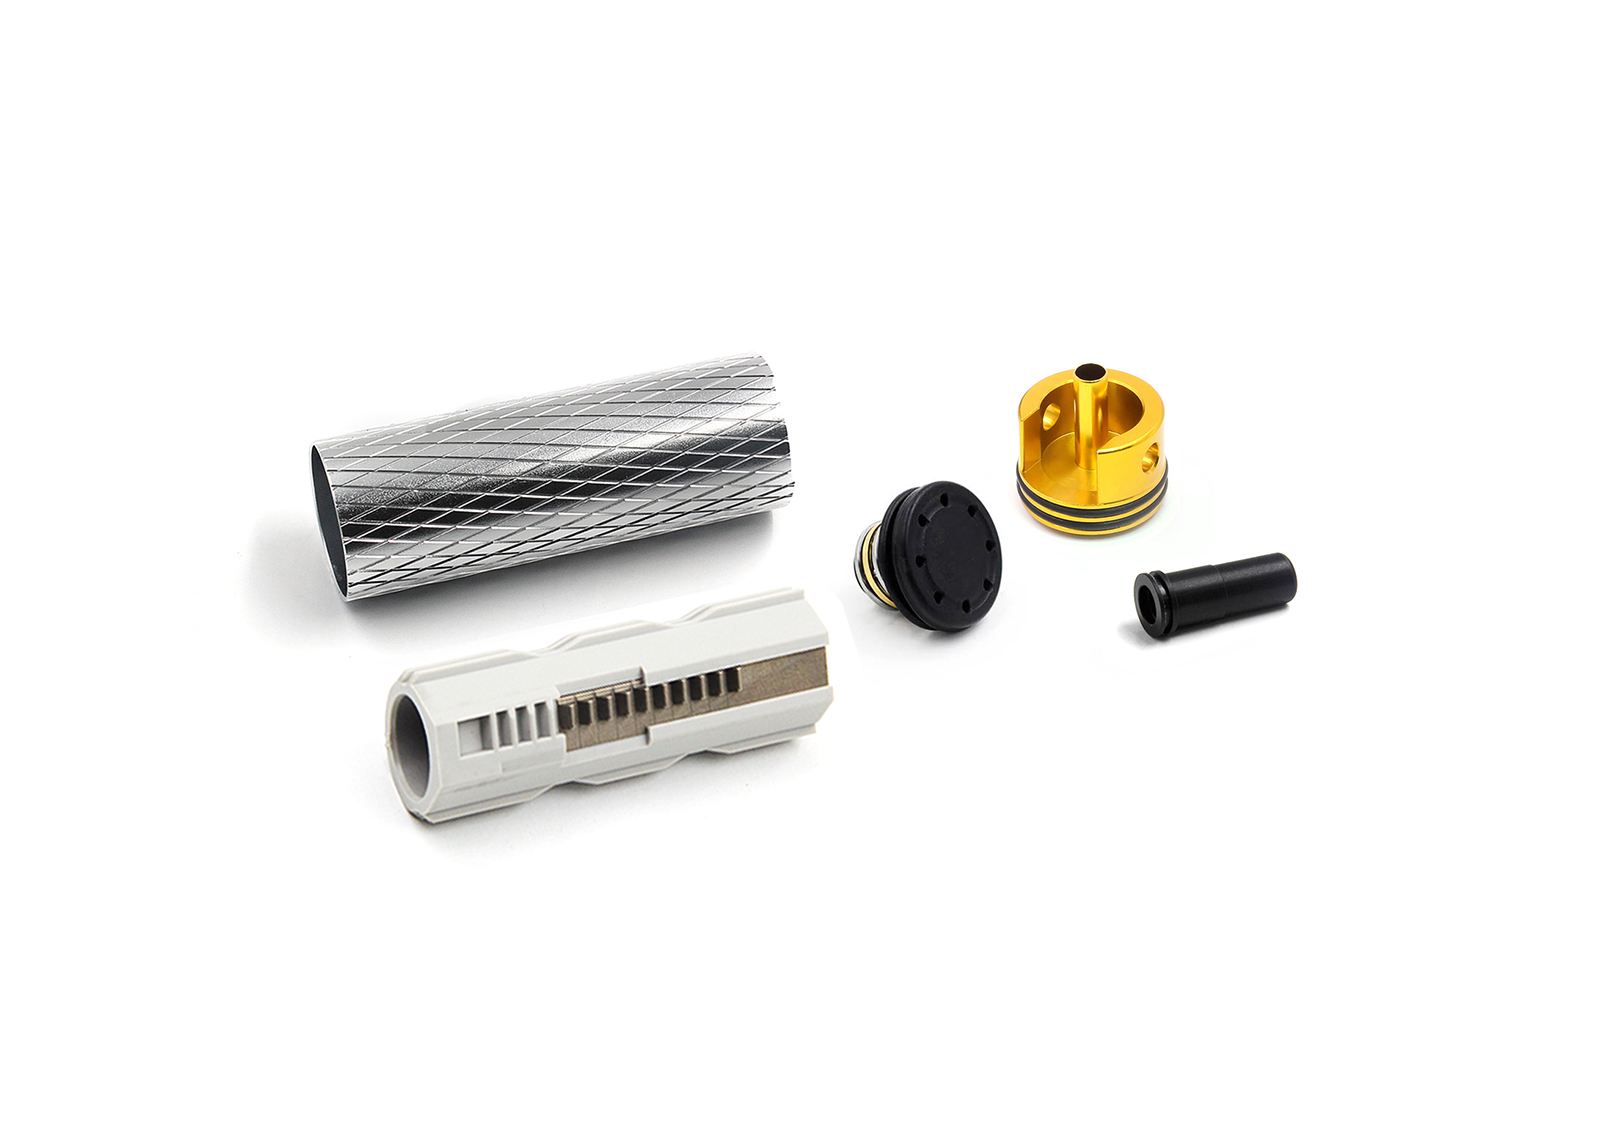 Cylinder Set for G3-A3/A4/SG1 (AOE Piston) - Modify AEG Airsoft parts